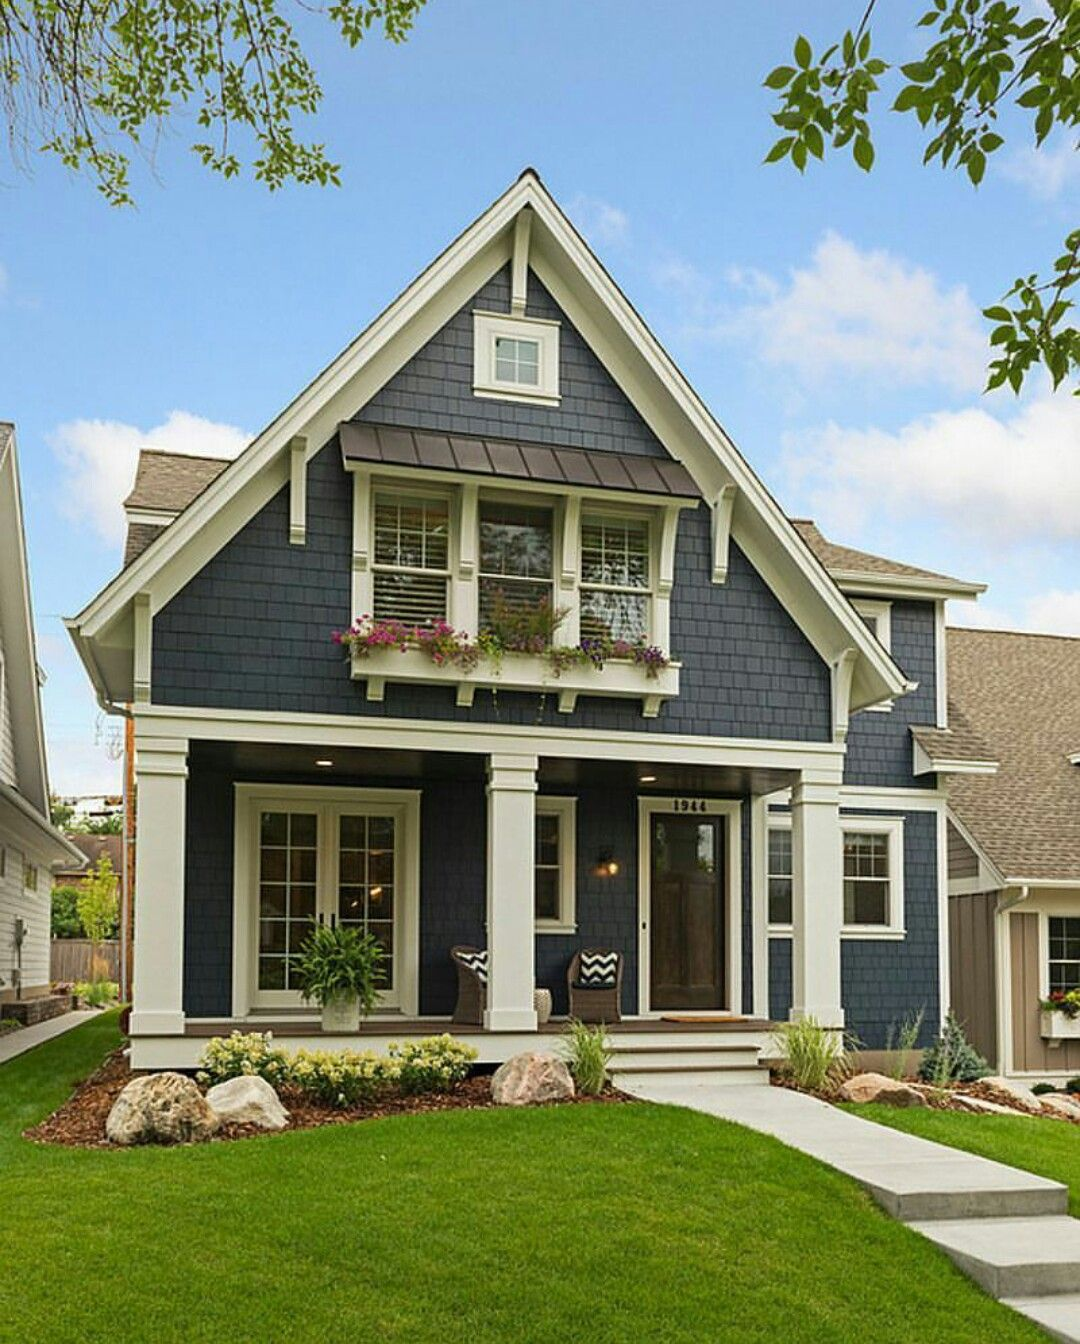 Pin By Terri Faucett On House Exteriors In 2018 Exterior House